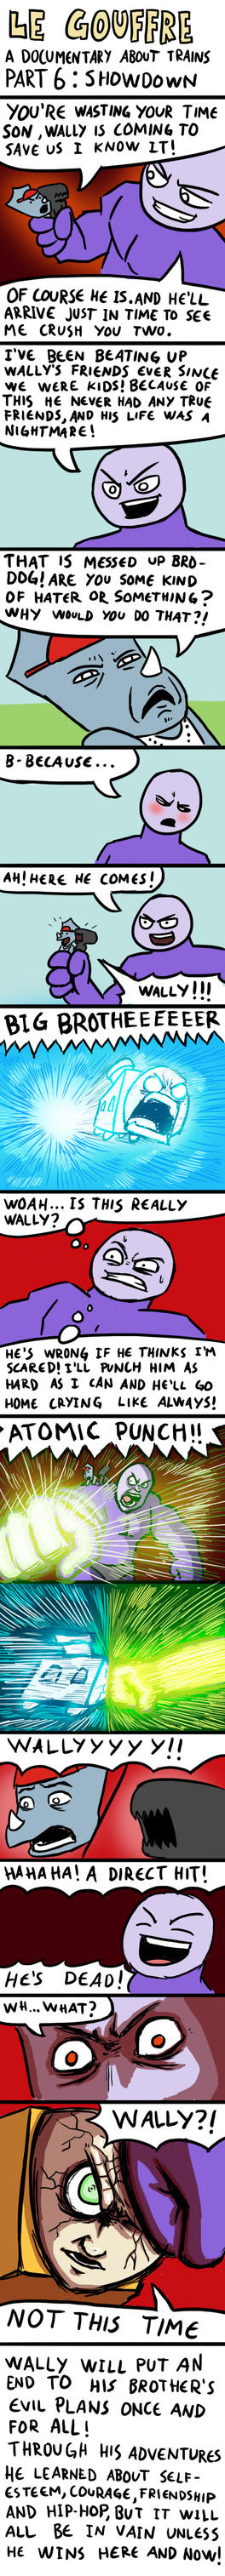 Wally McWagon's Adventures Part 6 by TreasureFanboy